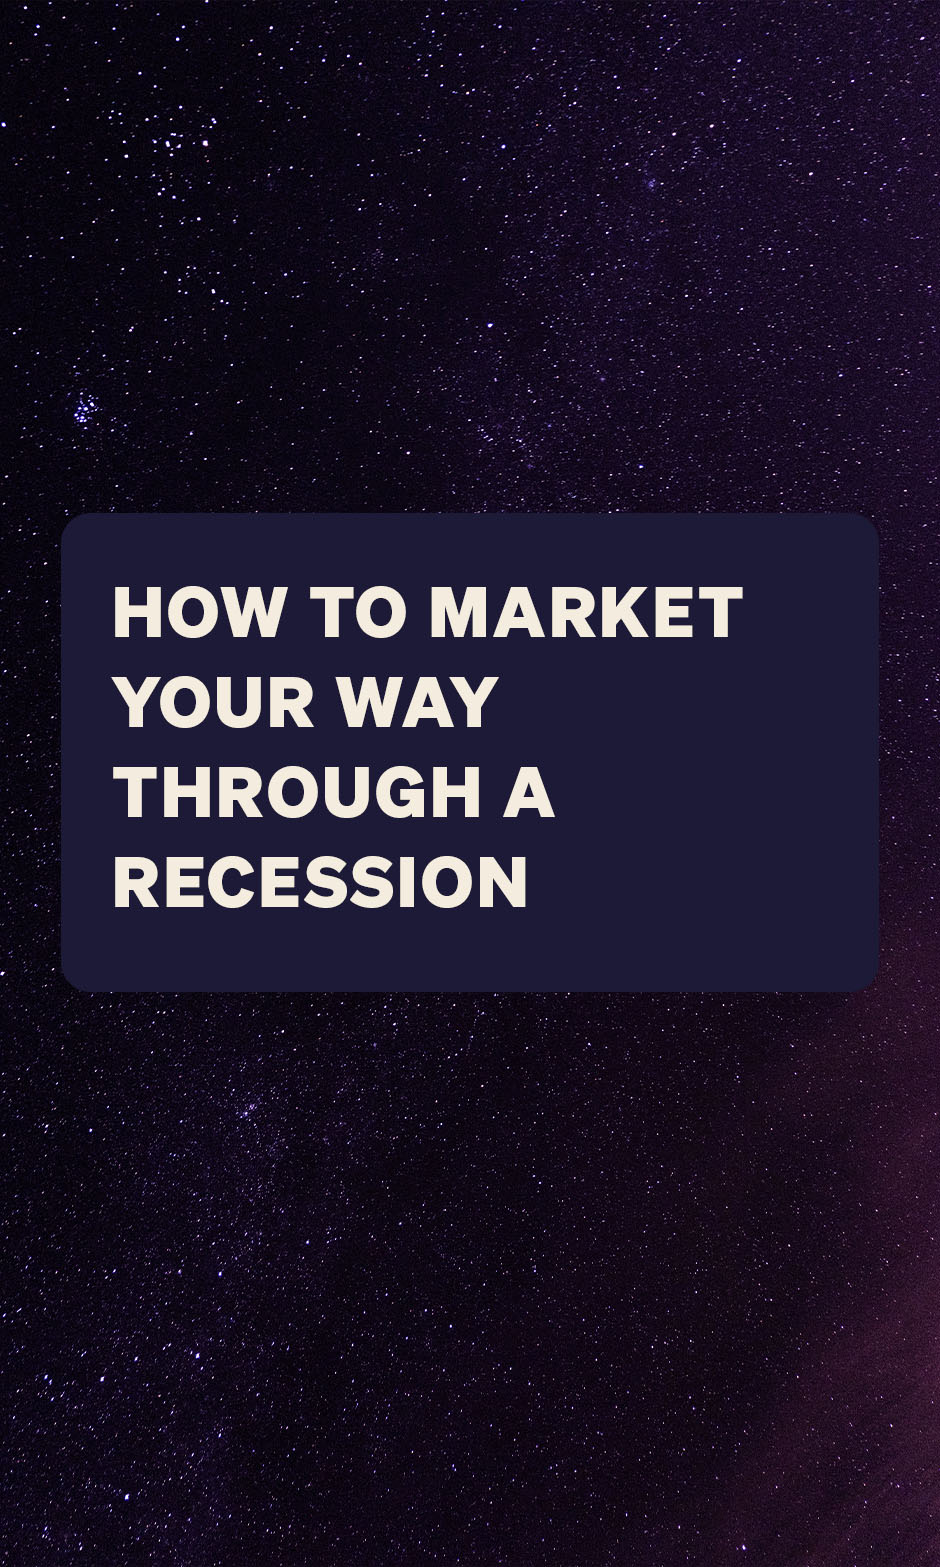 How to Market Your Way Through a Recession